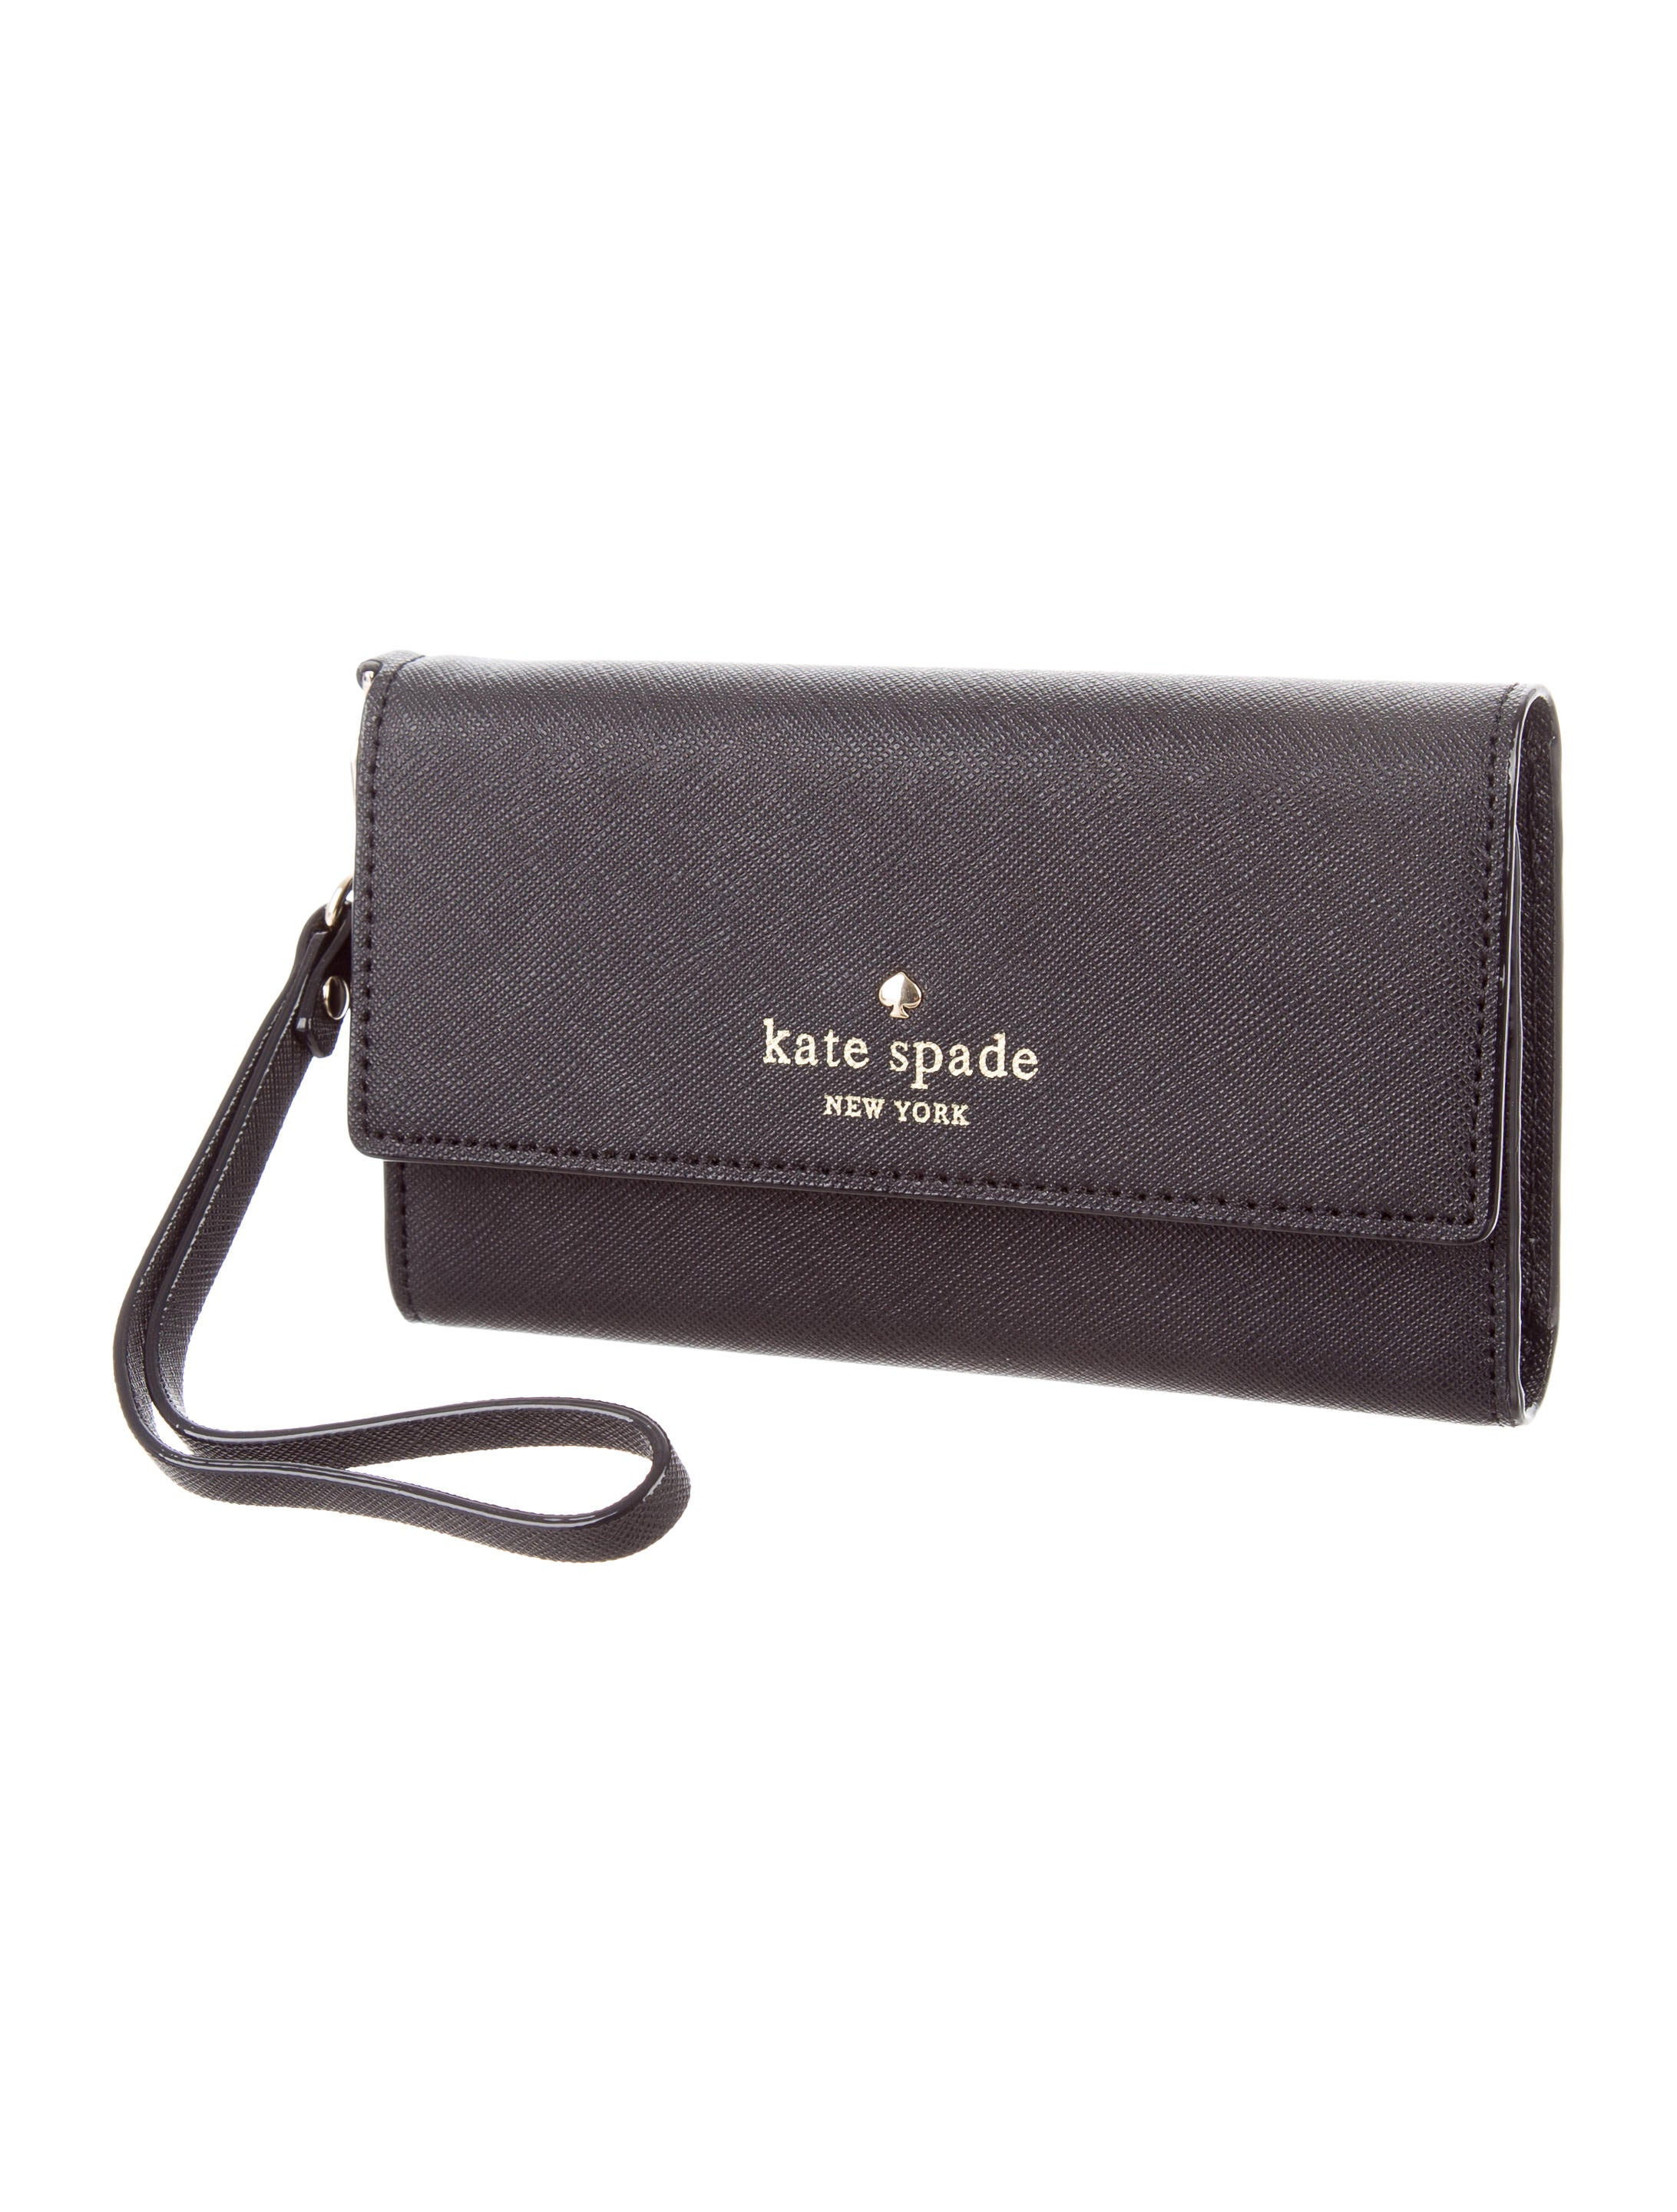 kate spade iphone wristlet kate spade new york cedar iphone wristlet w tags 2476